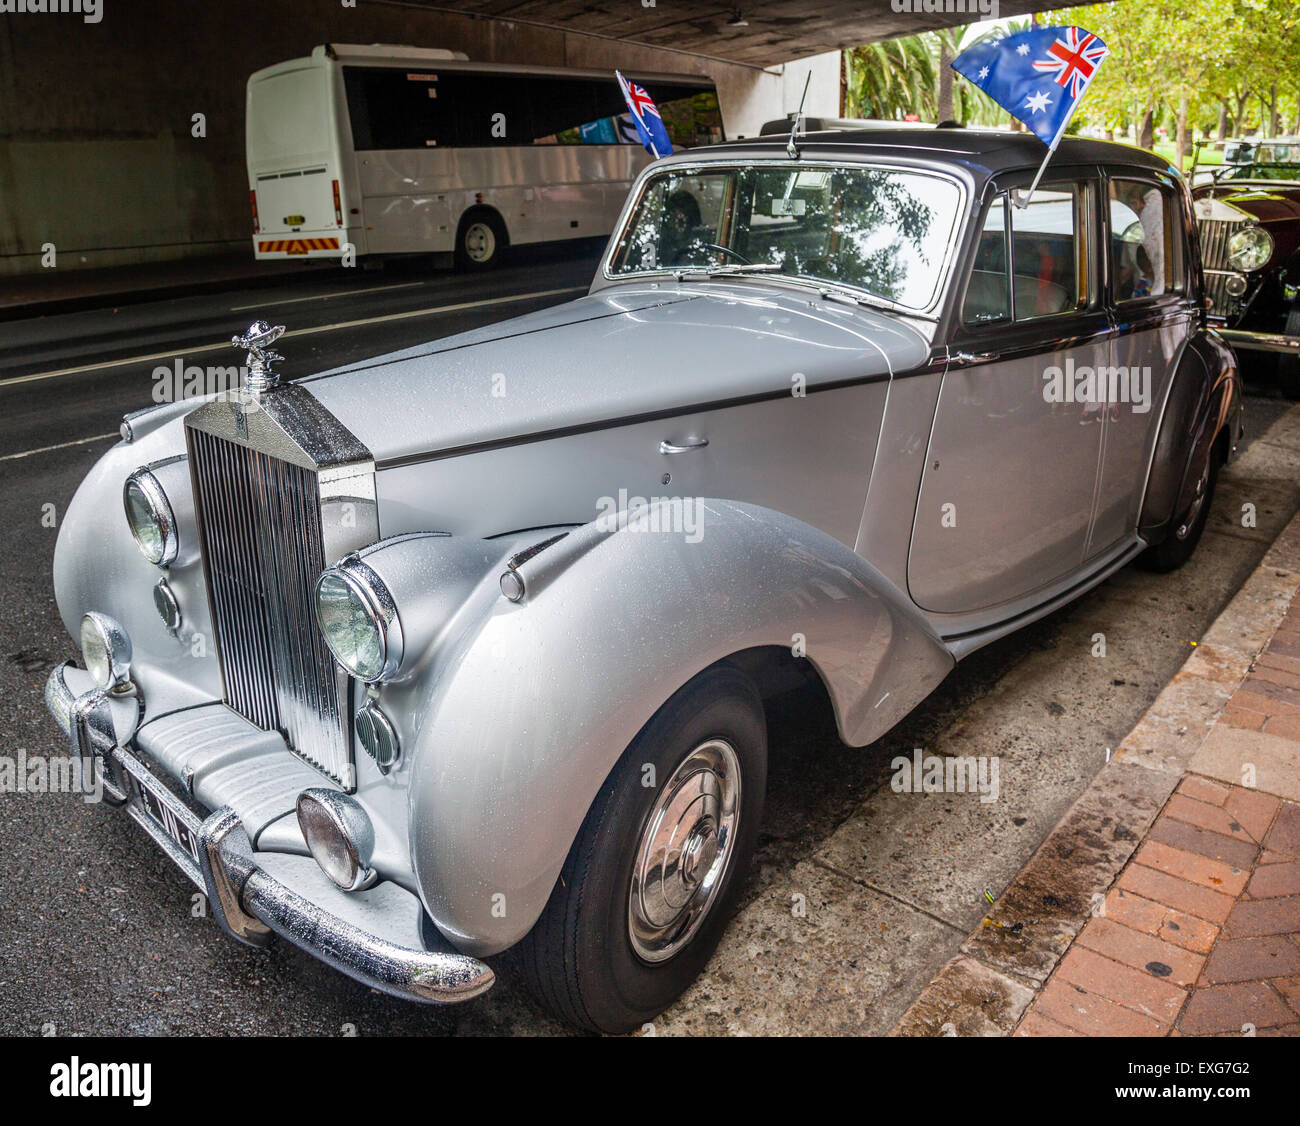 Australia, New South Wales, Sydney, classic Rolls-Royce Phantom motor car, exhibited in Macquarie Street during - Stock Image